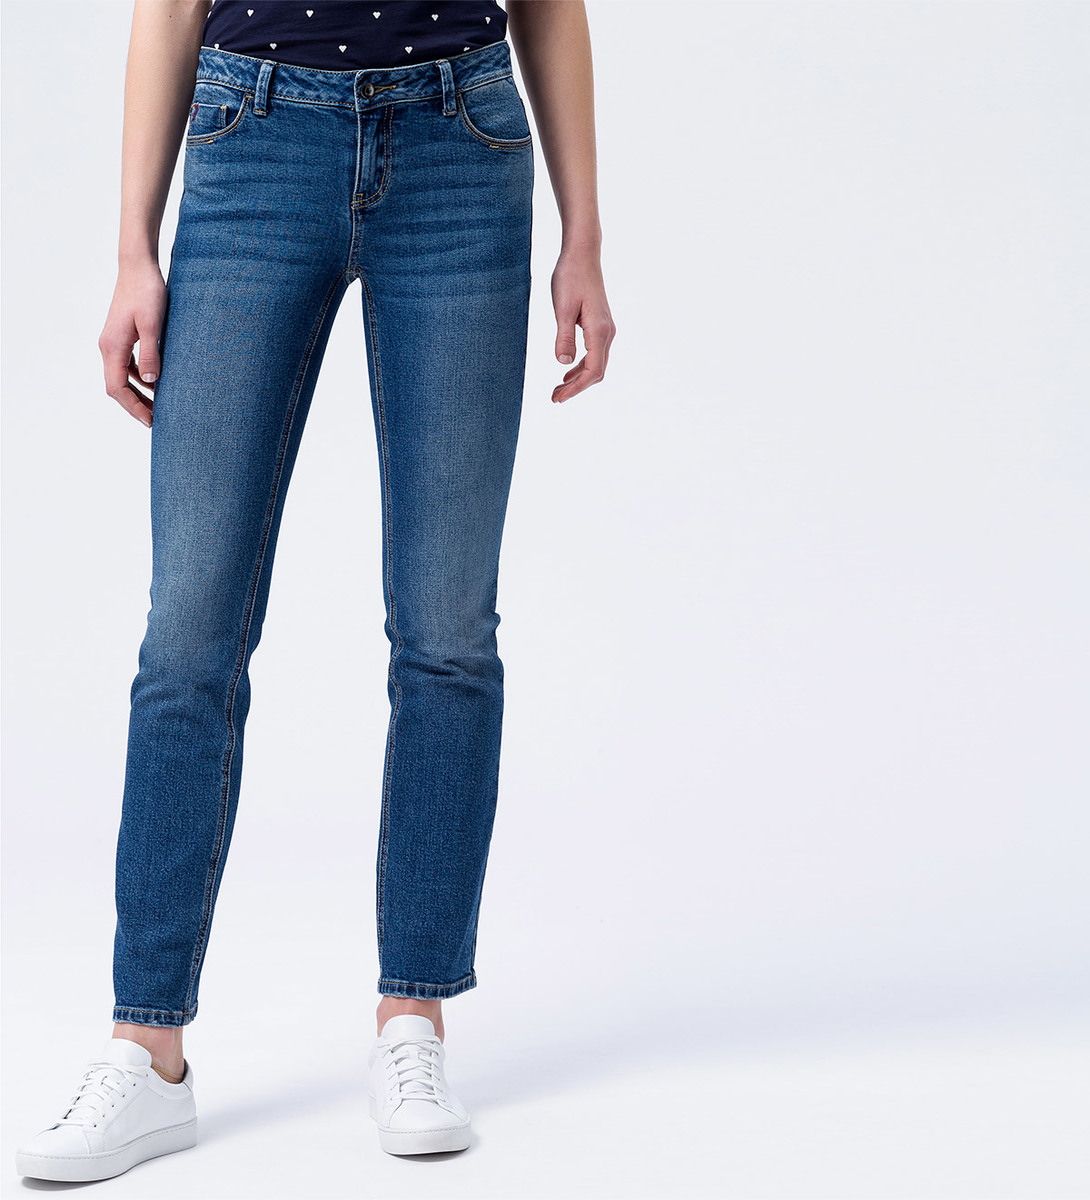 Jeans in Straight fit 32 Inch in vintage blue wash